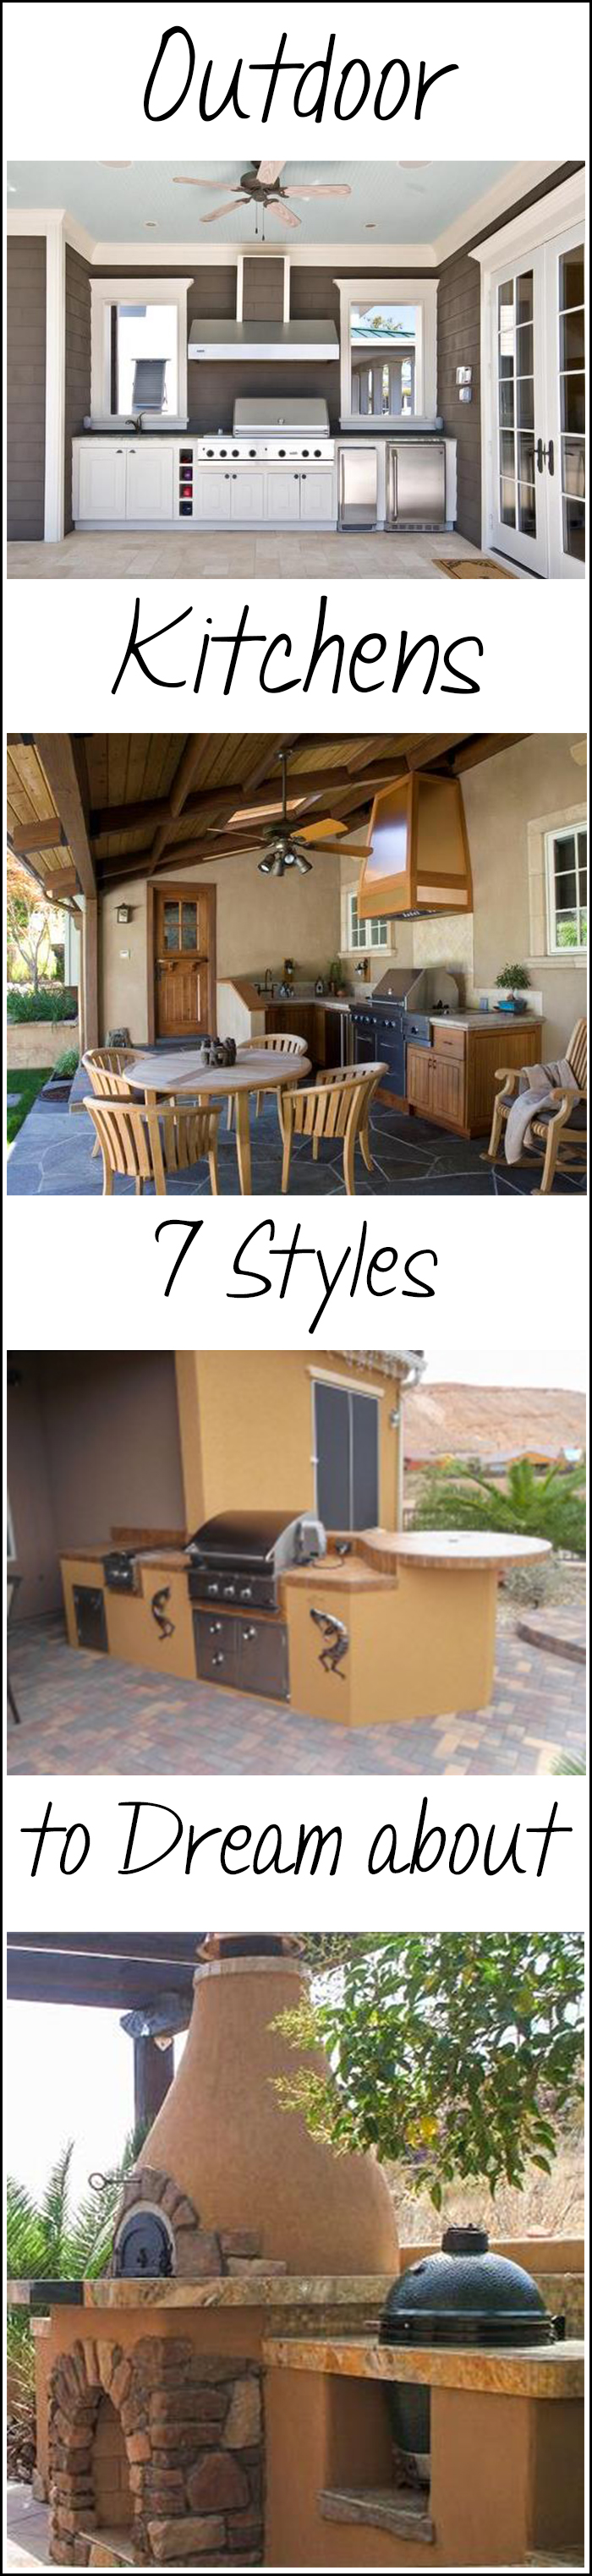 Outdoor Kitchens- 7 Styles to Dream About